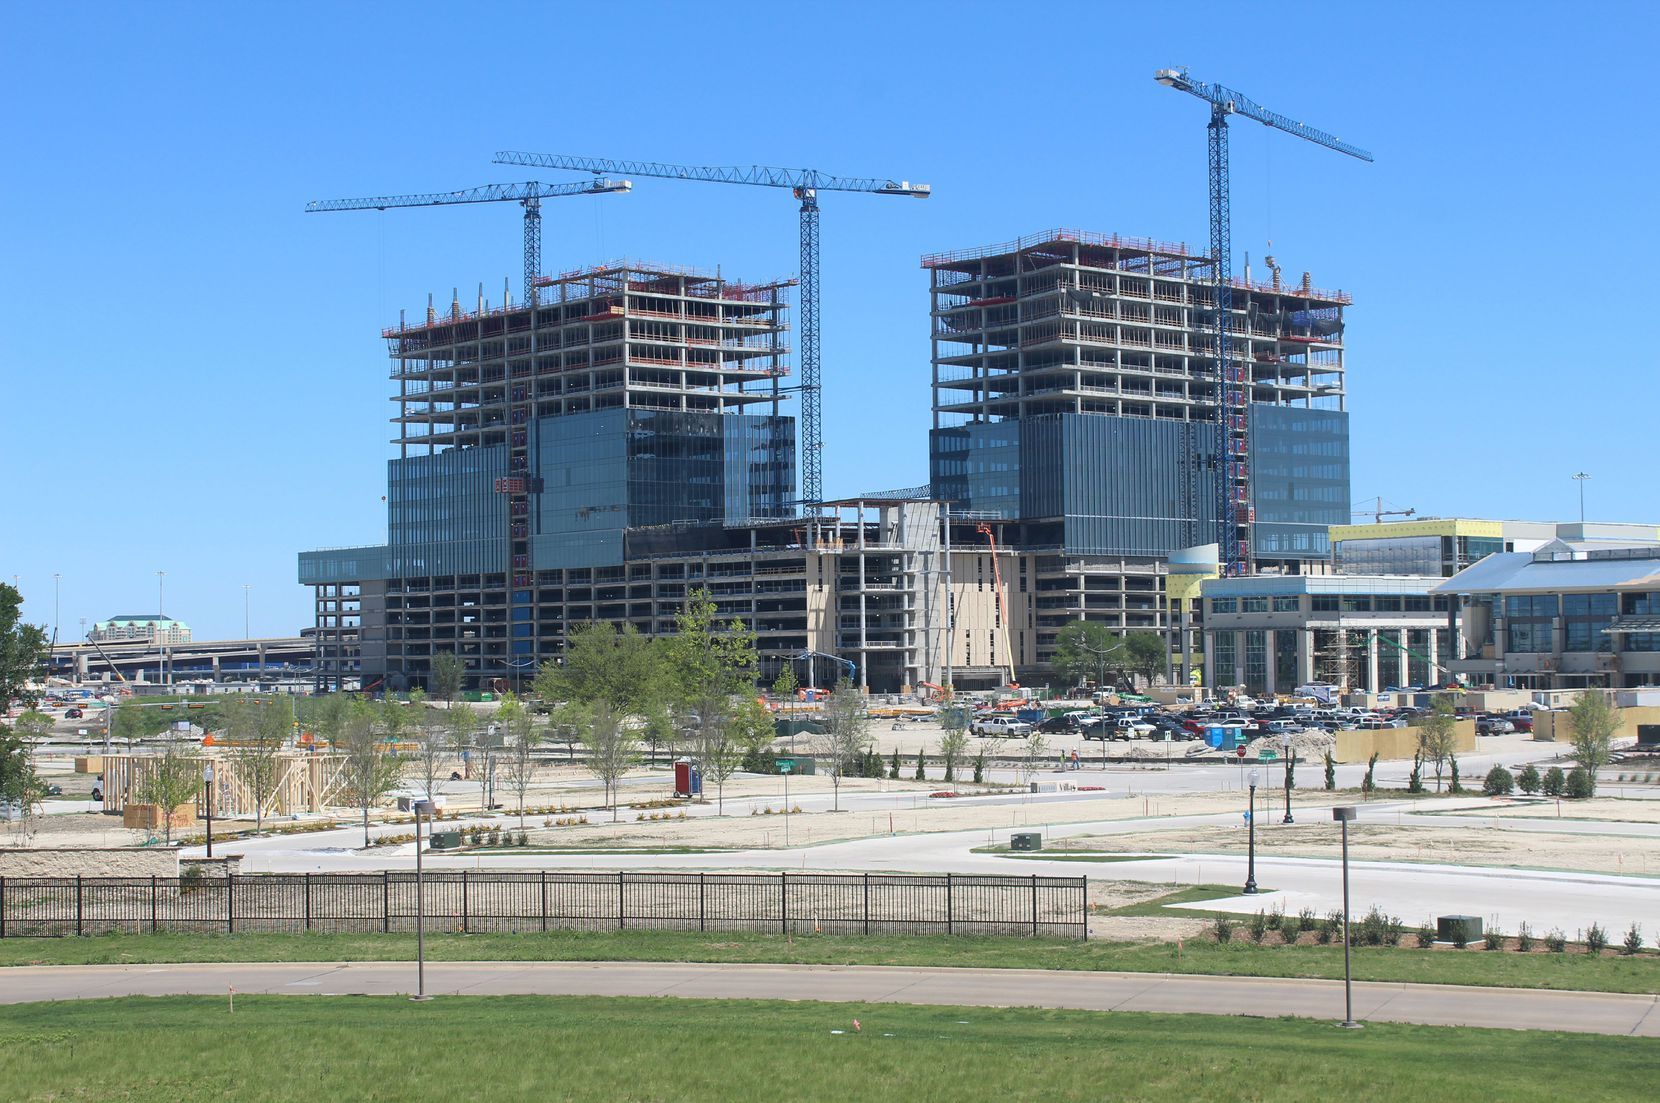 About 5,000 people will work in Liberty Mutual Insurance's new Plano tower complex.